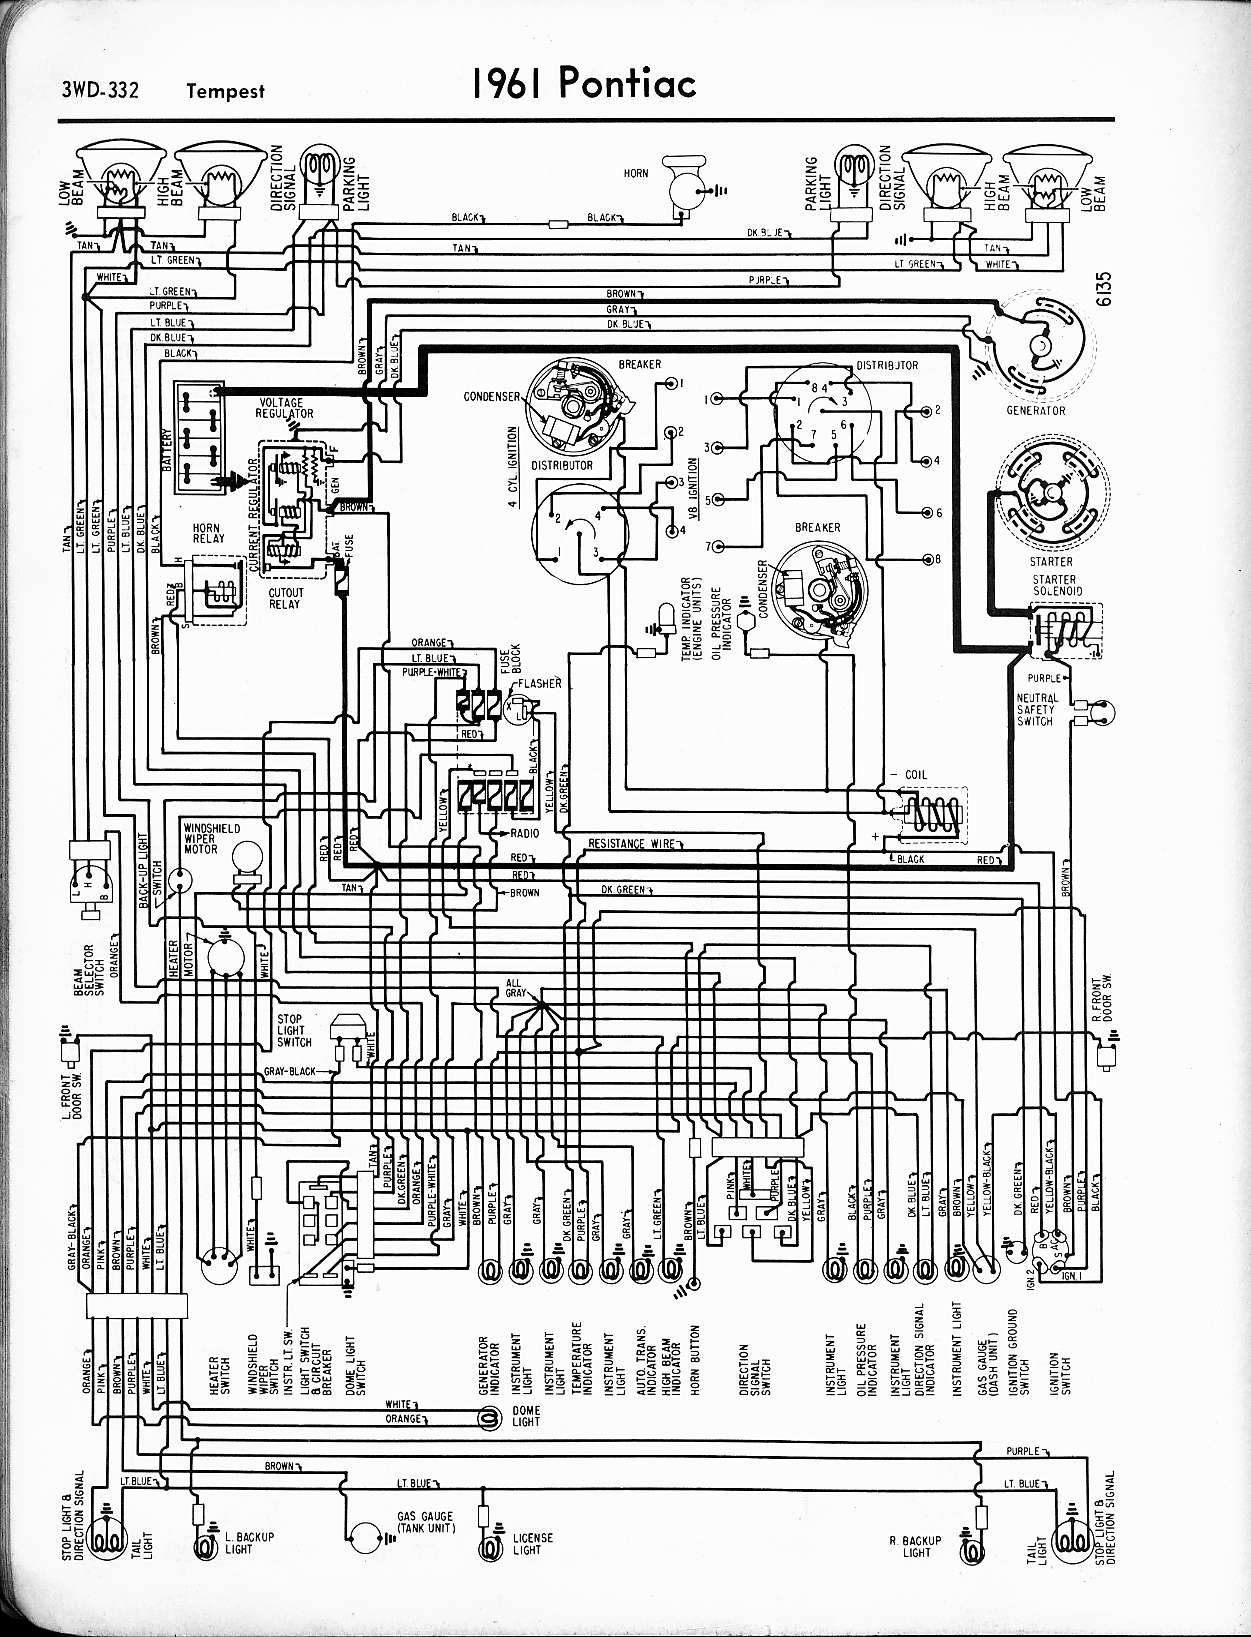 Wire Diagram For Pontiac